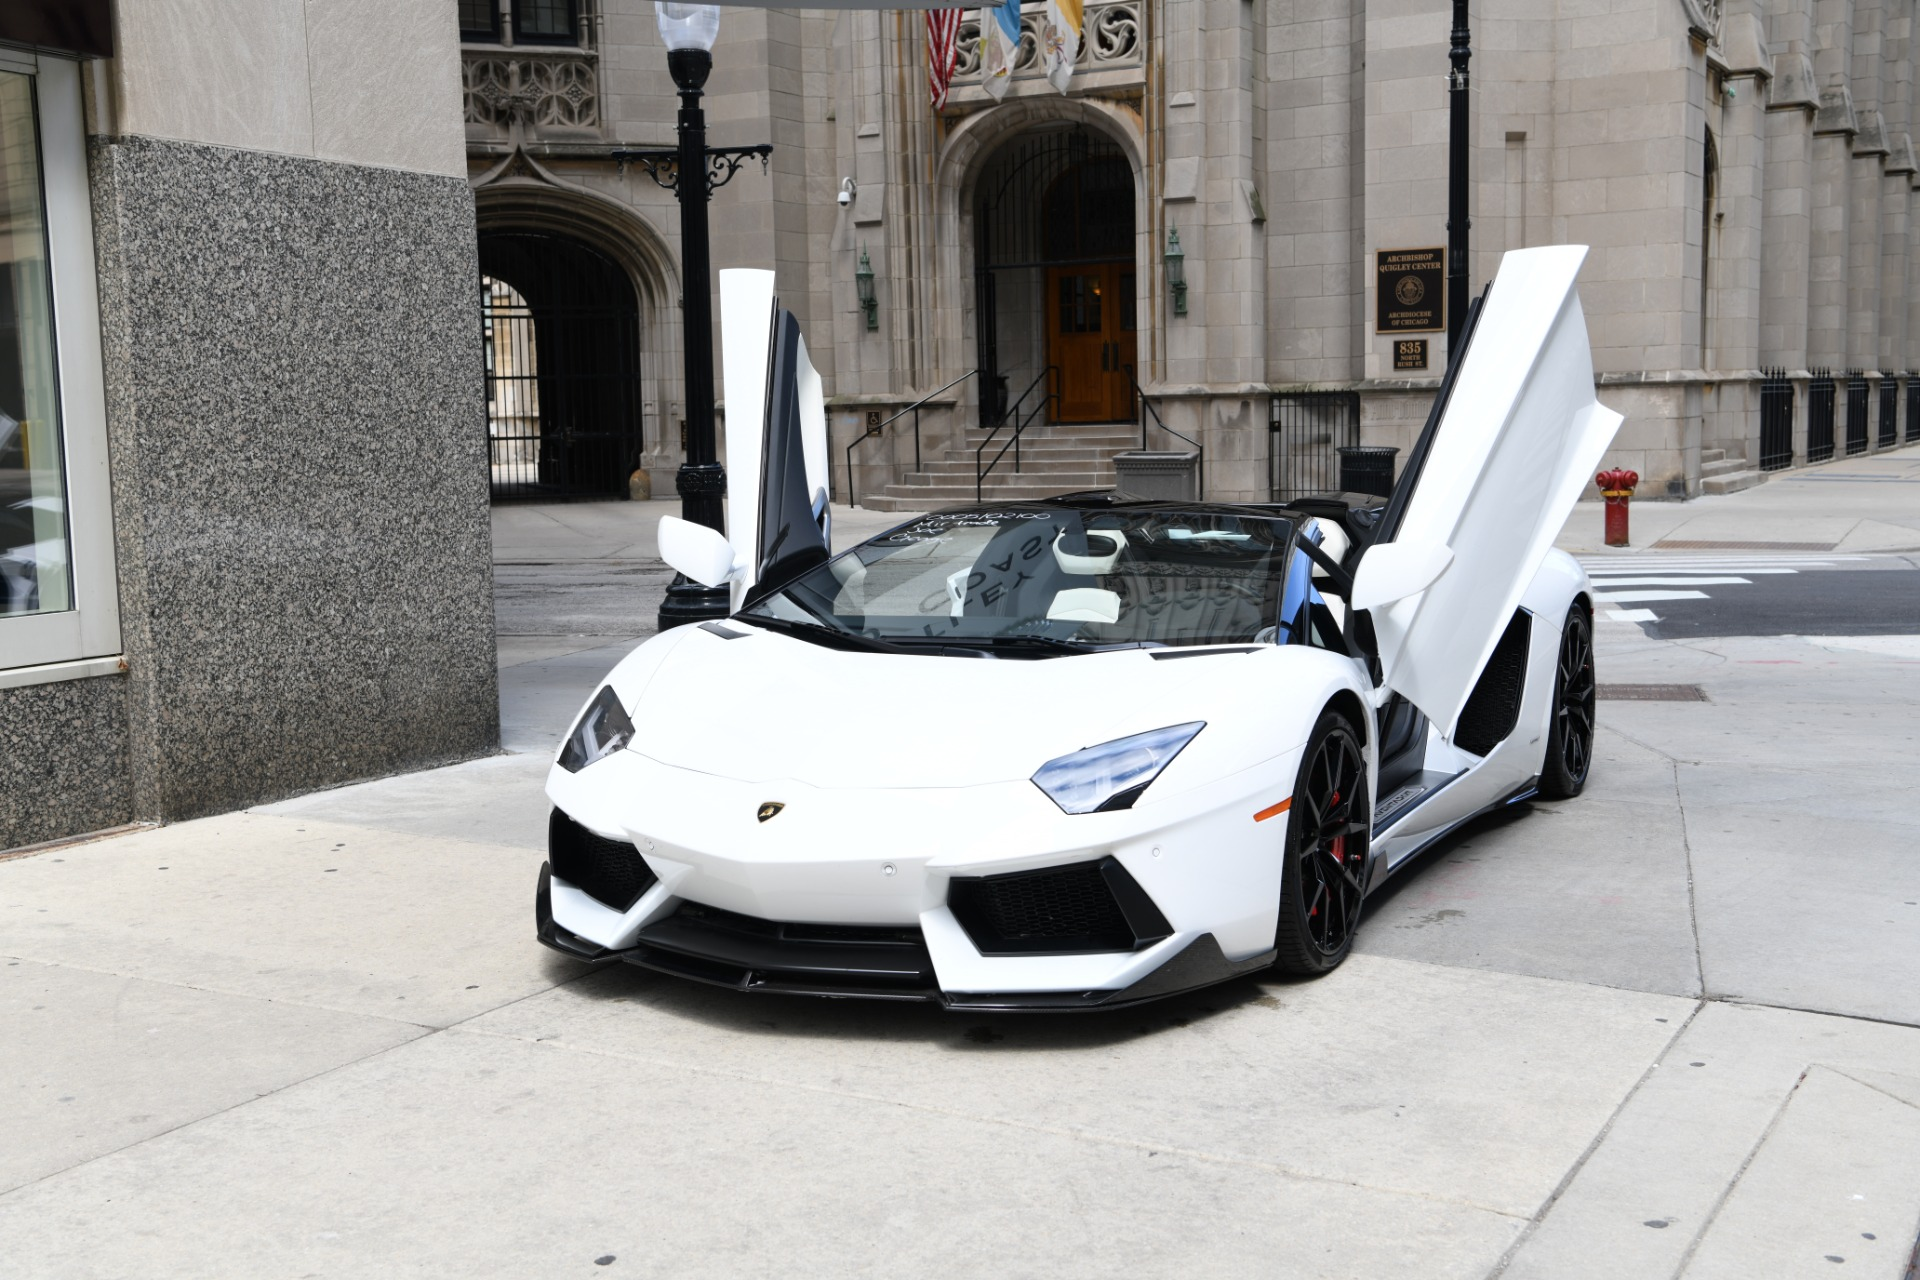 Superior Used 2013 Lamborghini Aventador Roadster LP700 4 Roadster | Chicago, IL